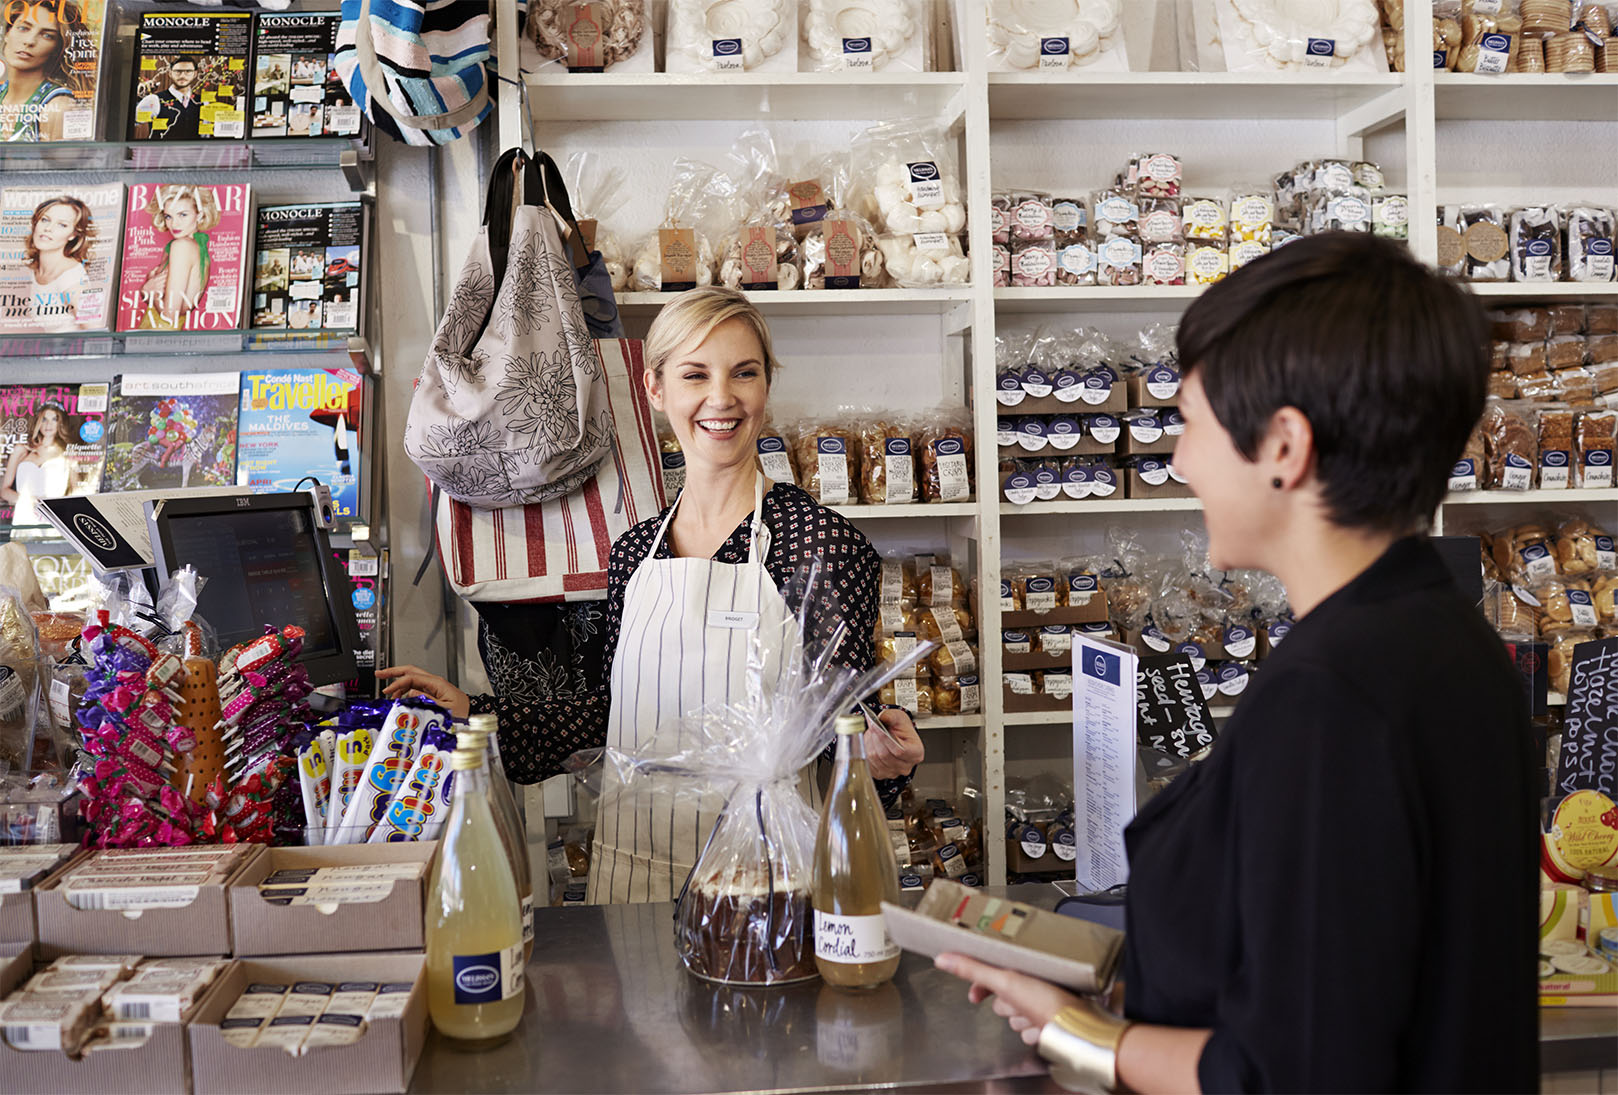 Build your business: how to attract new customers - Brought to you by NatWest